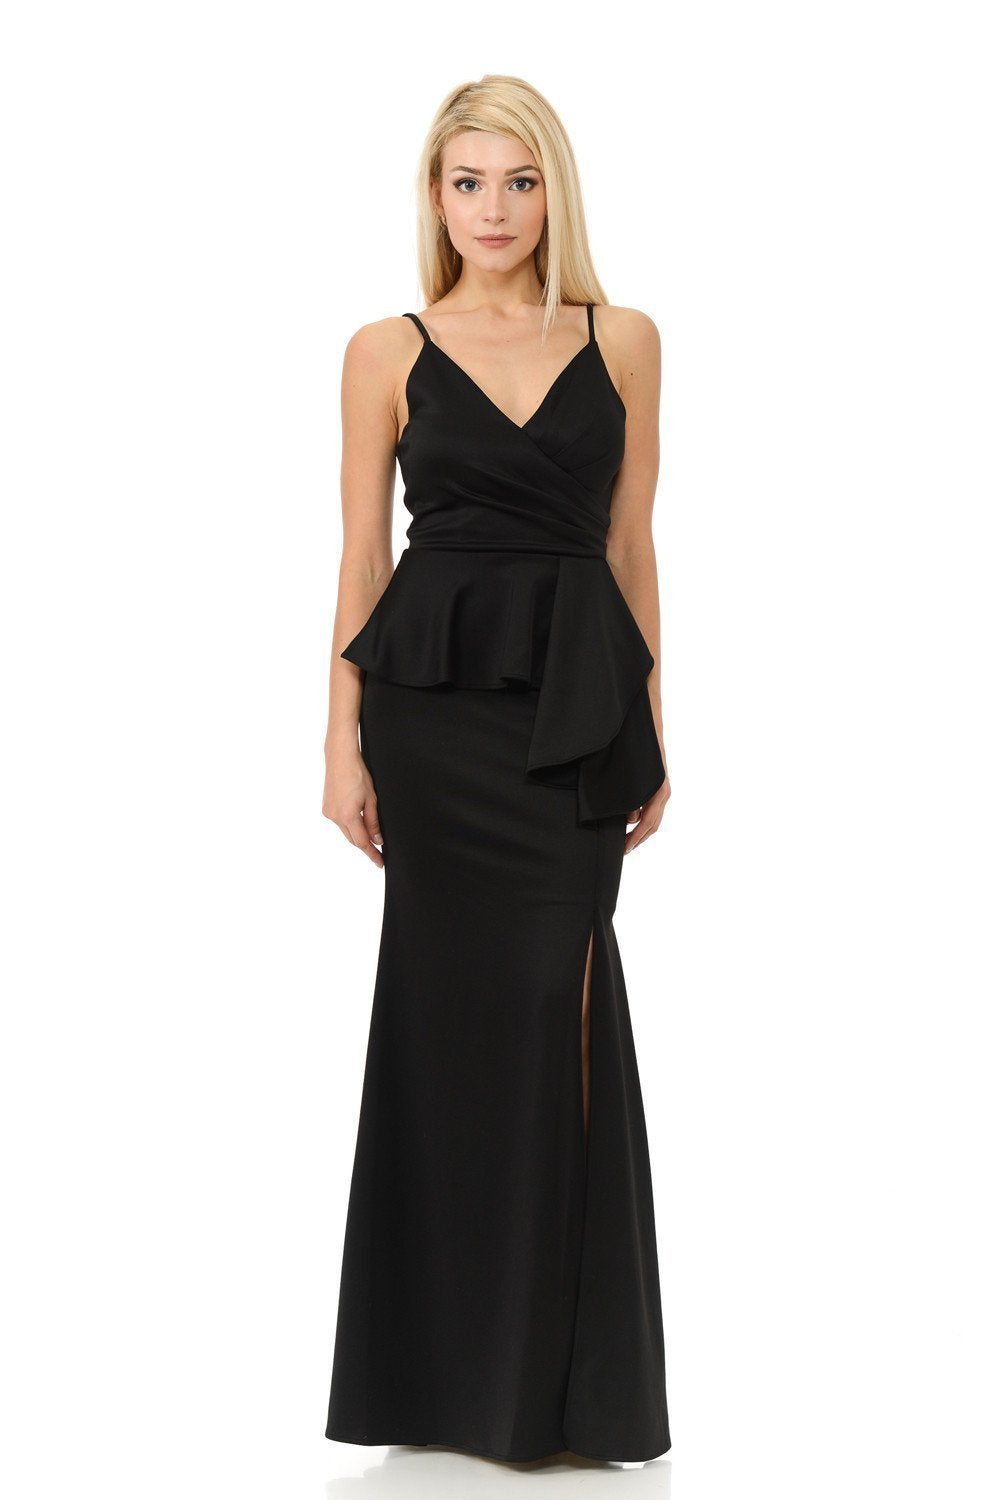 Lenovia - V-Neck Wrap Bodice Peplum Evening Dress 5174 In Black